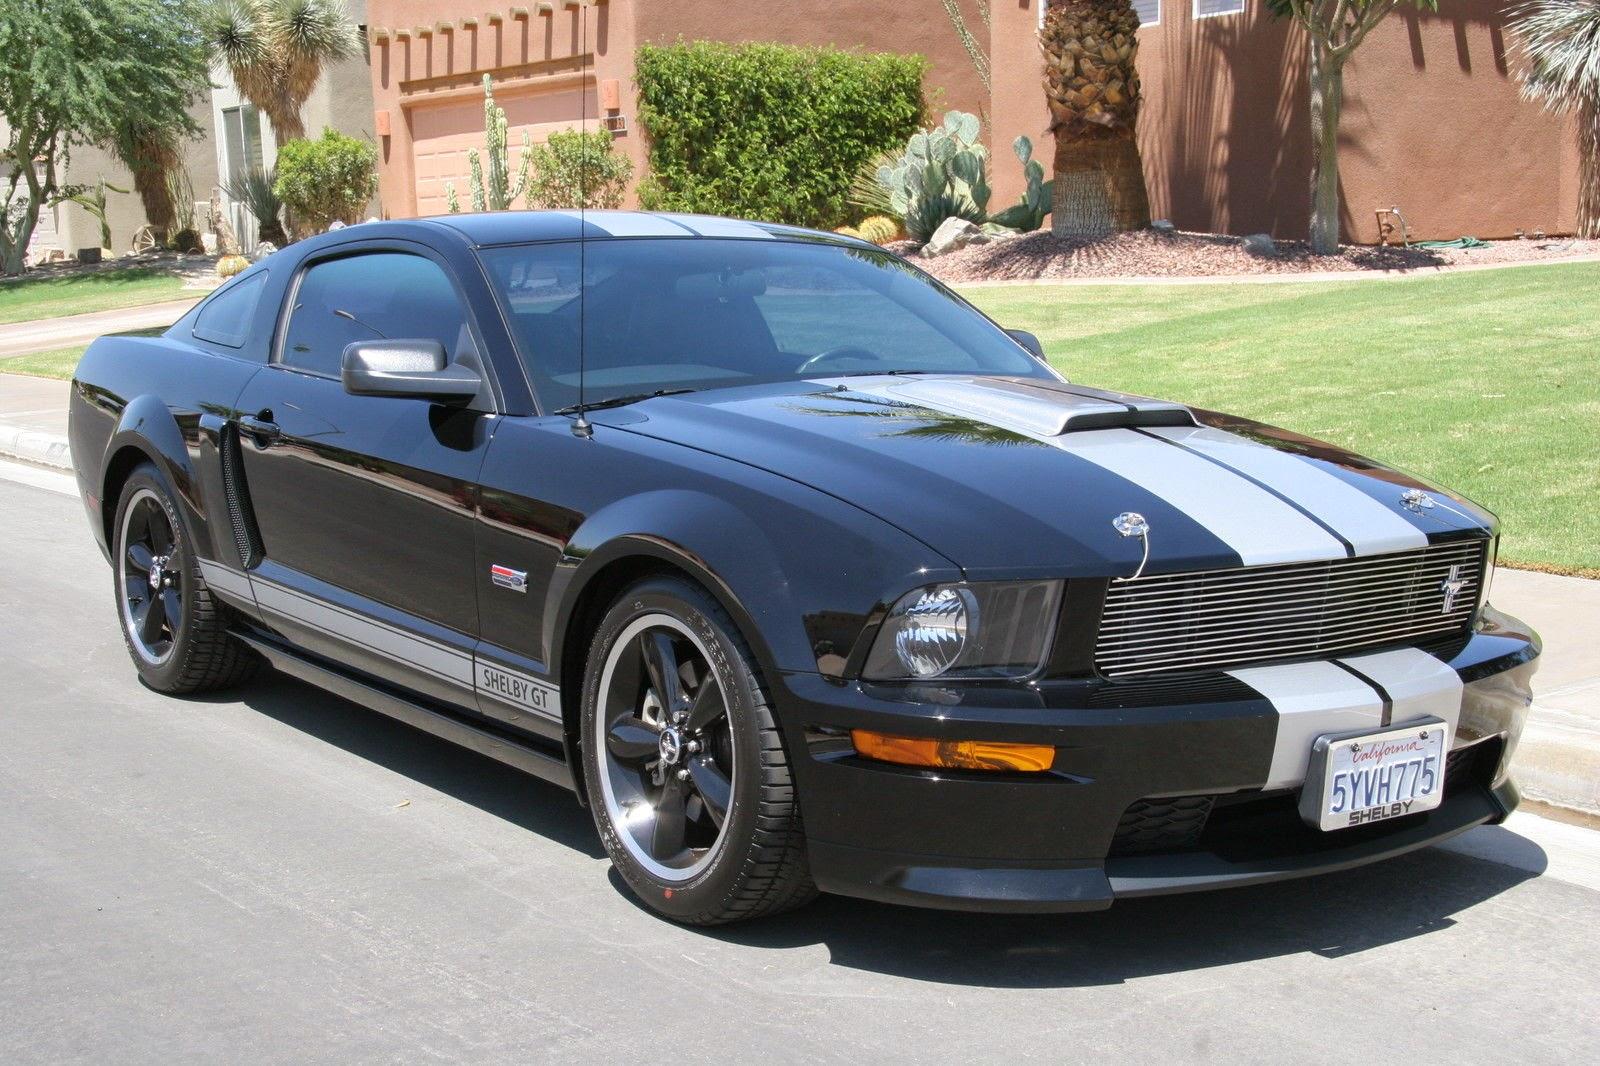 2007 Ford Mustang Shelby GT Black Silver ~ For Sale ...